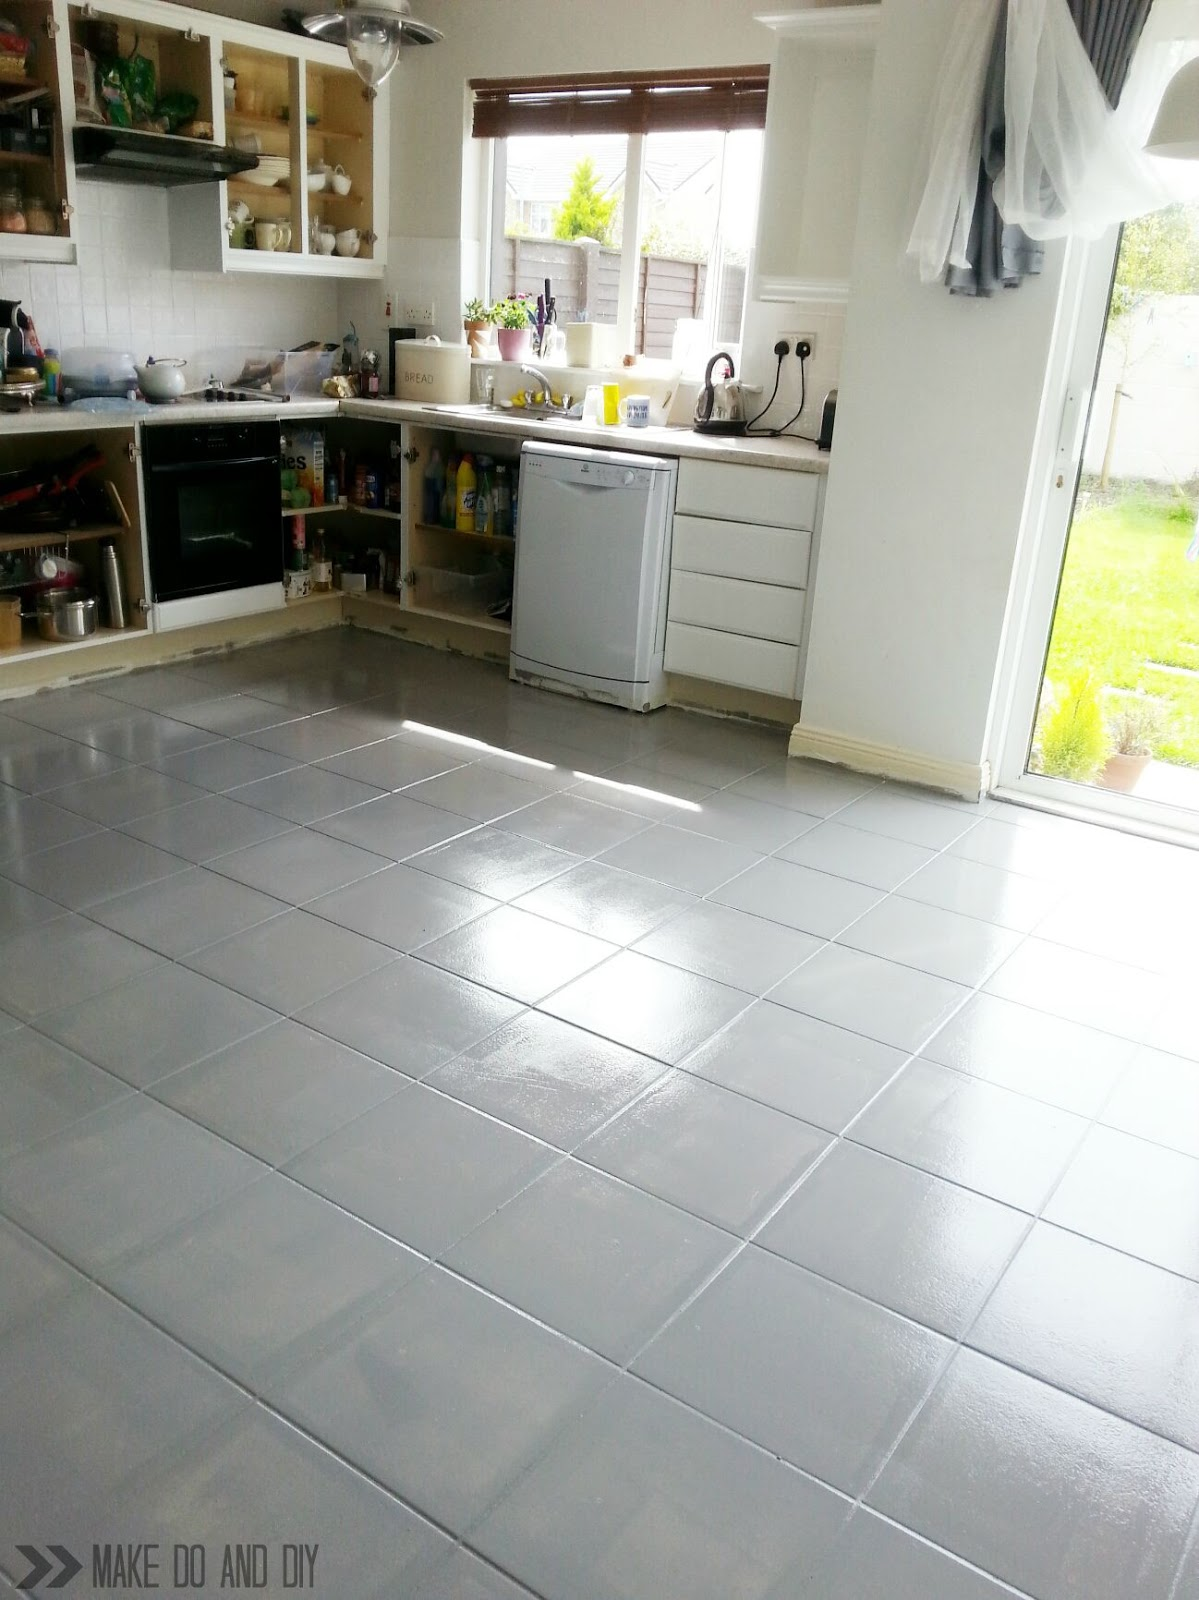 Painted tile floor no really make do and diy how to paint a tile floor and what you should think about before you do dailygadgetfo Choice Image